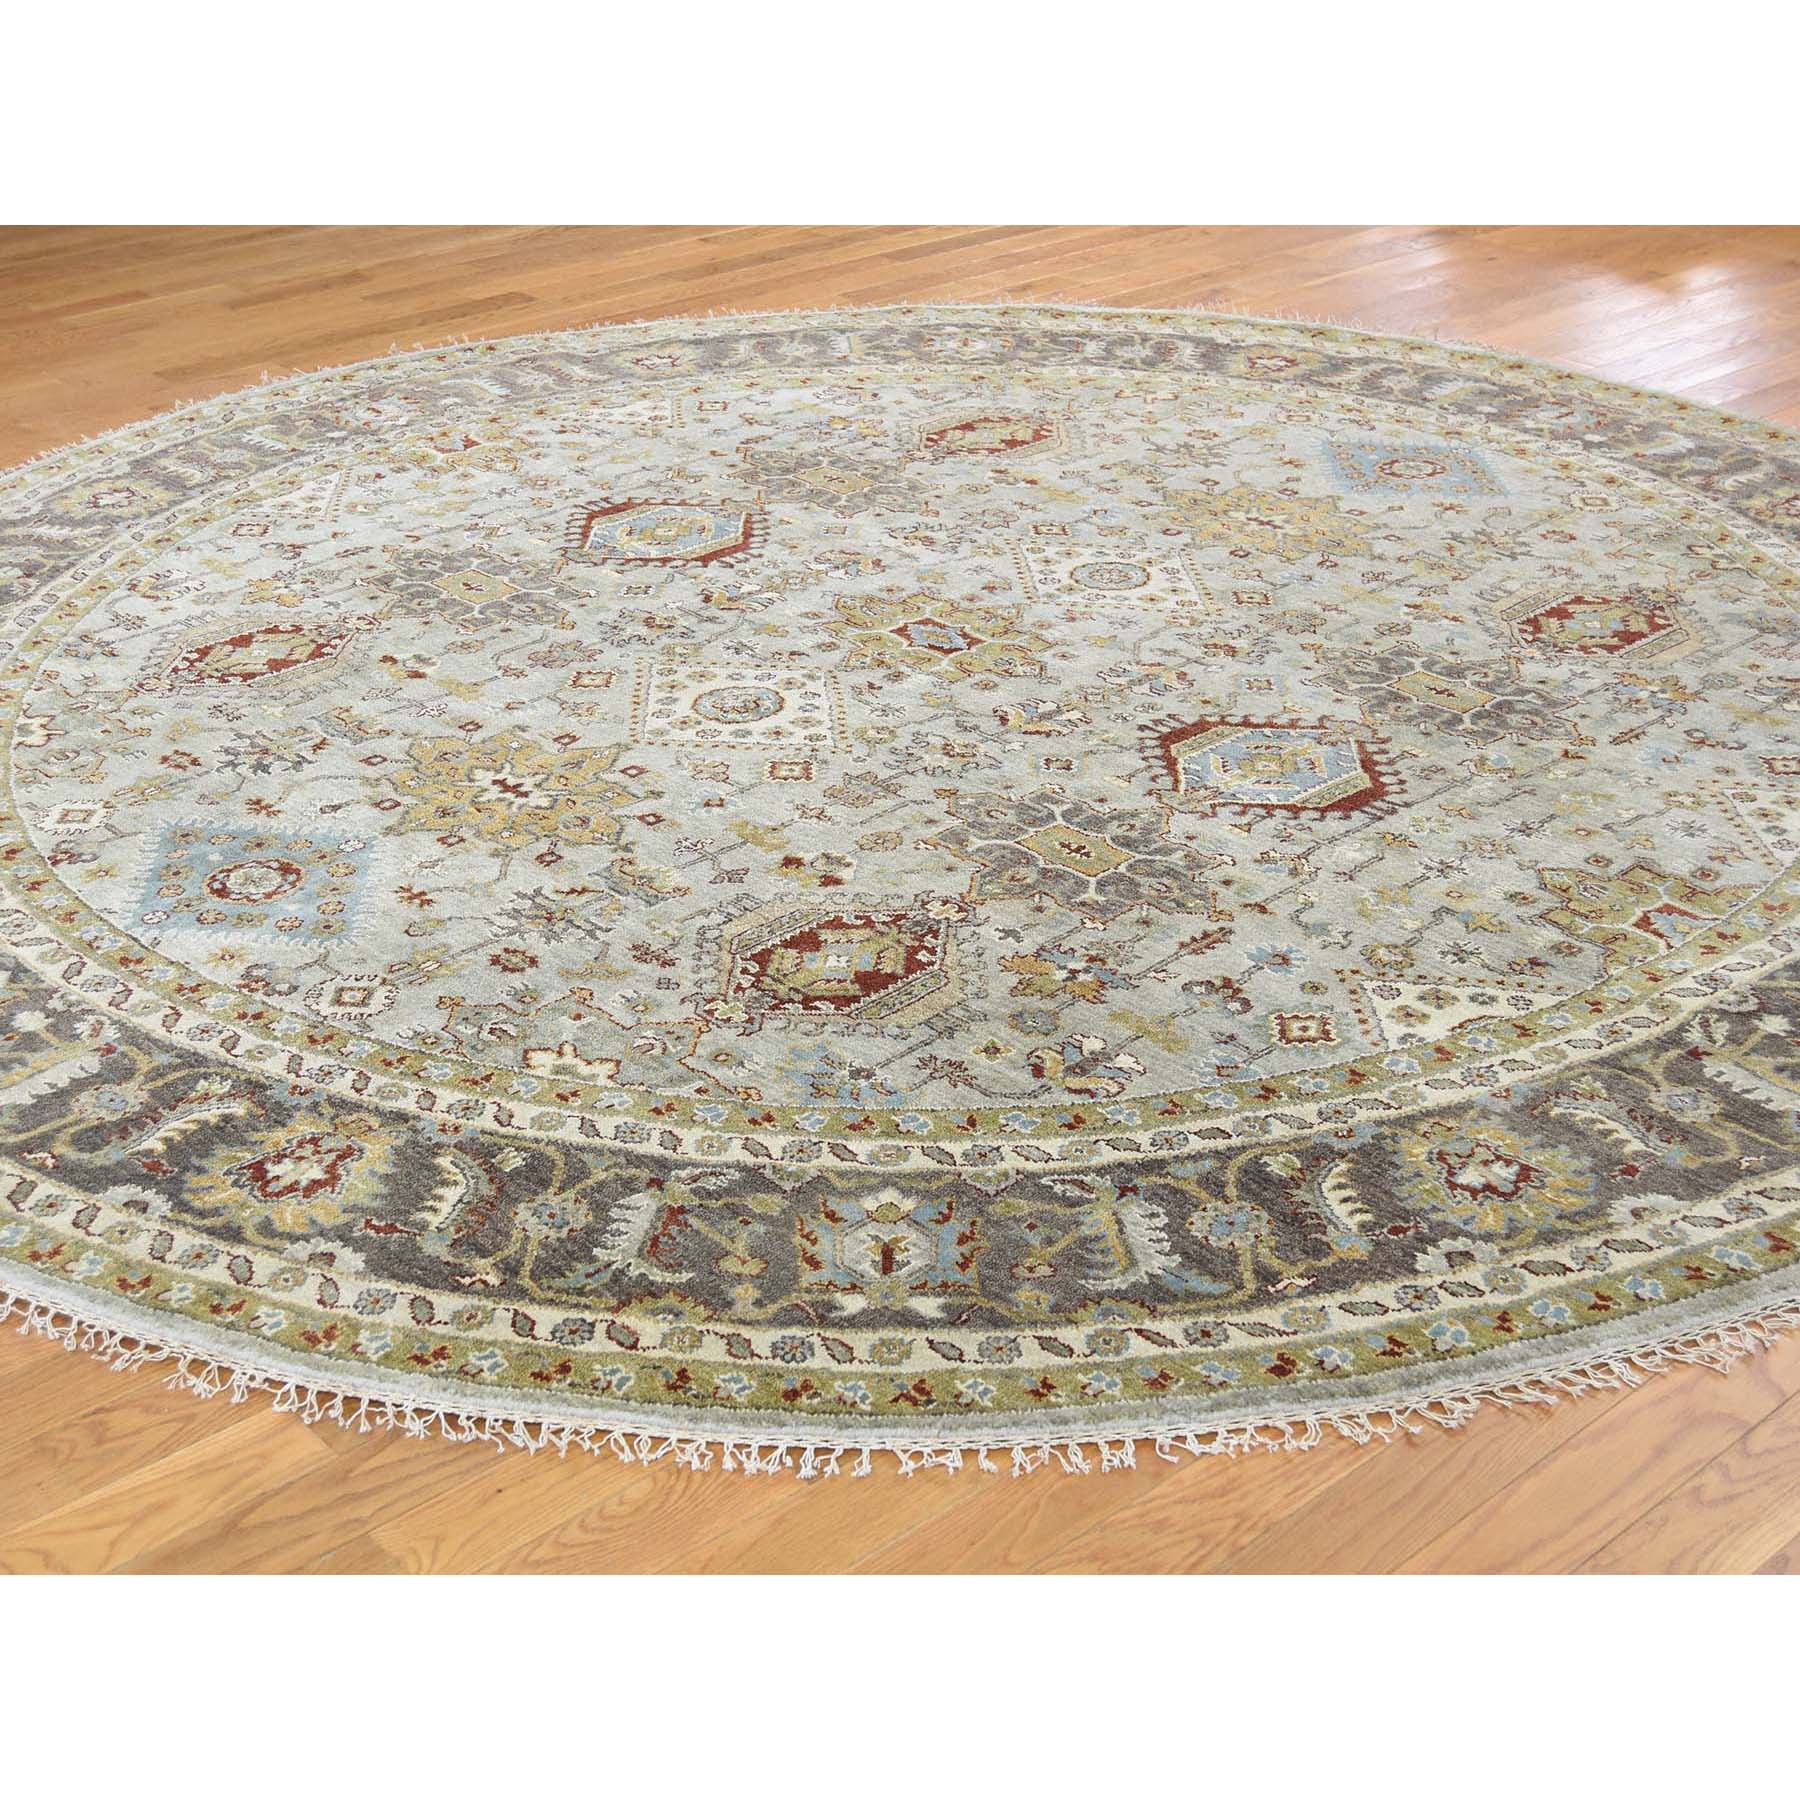 8-x8- Hand-Knotted Silver Karajeh Design Pure Wool Round Oriental Rug